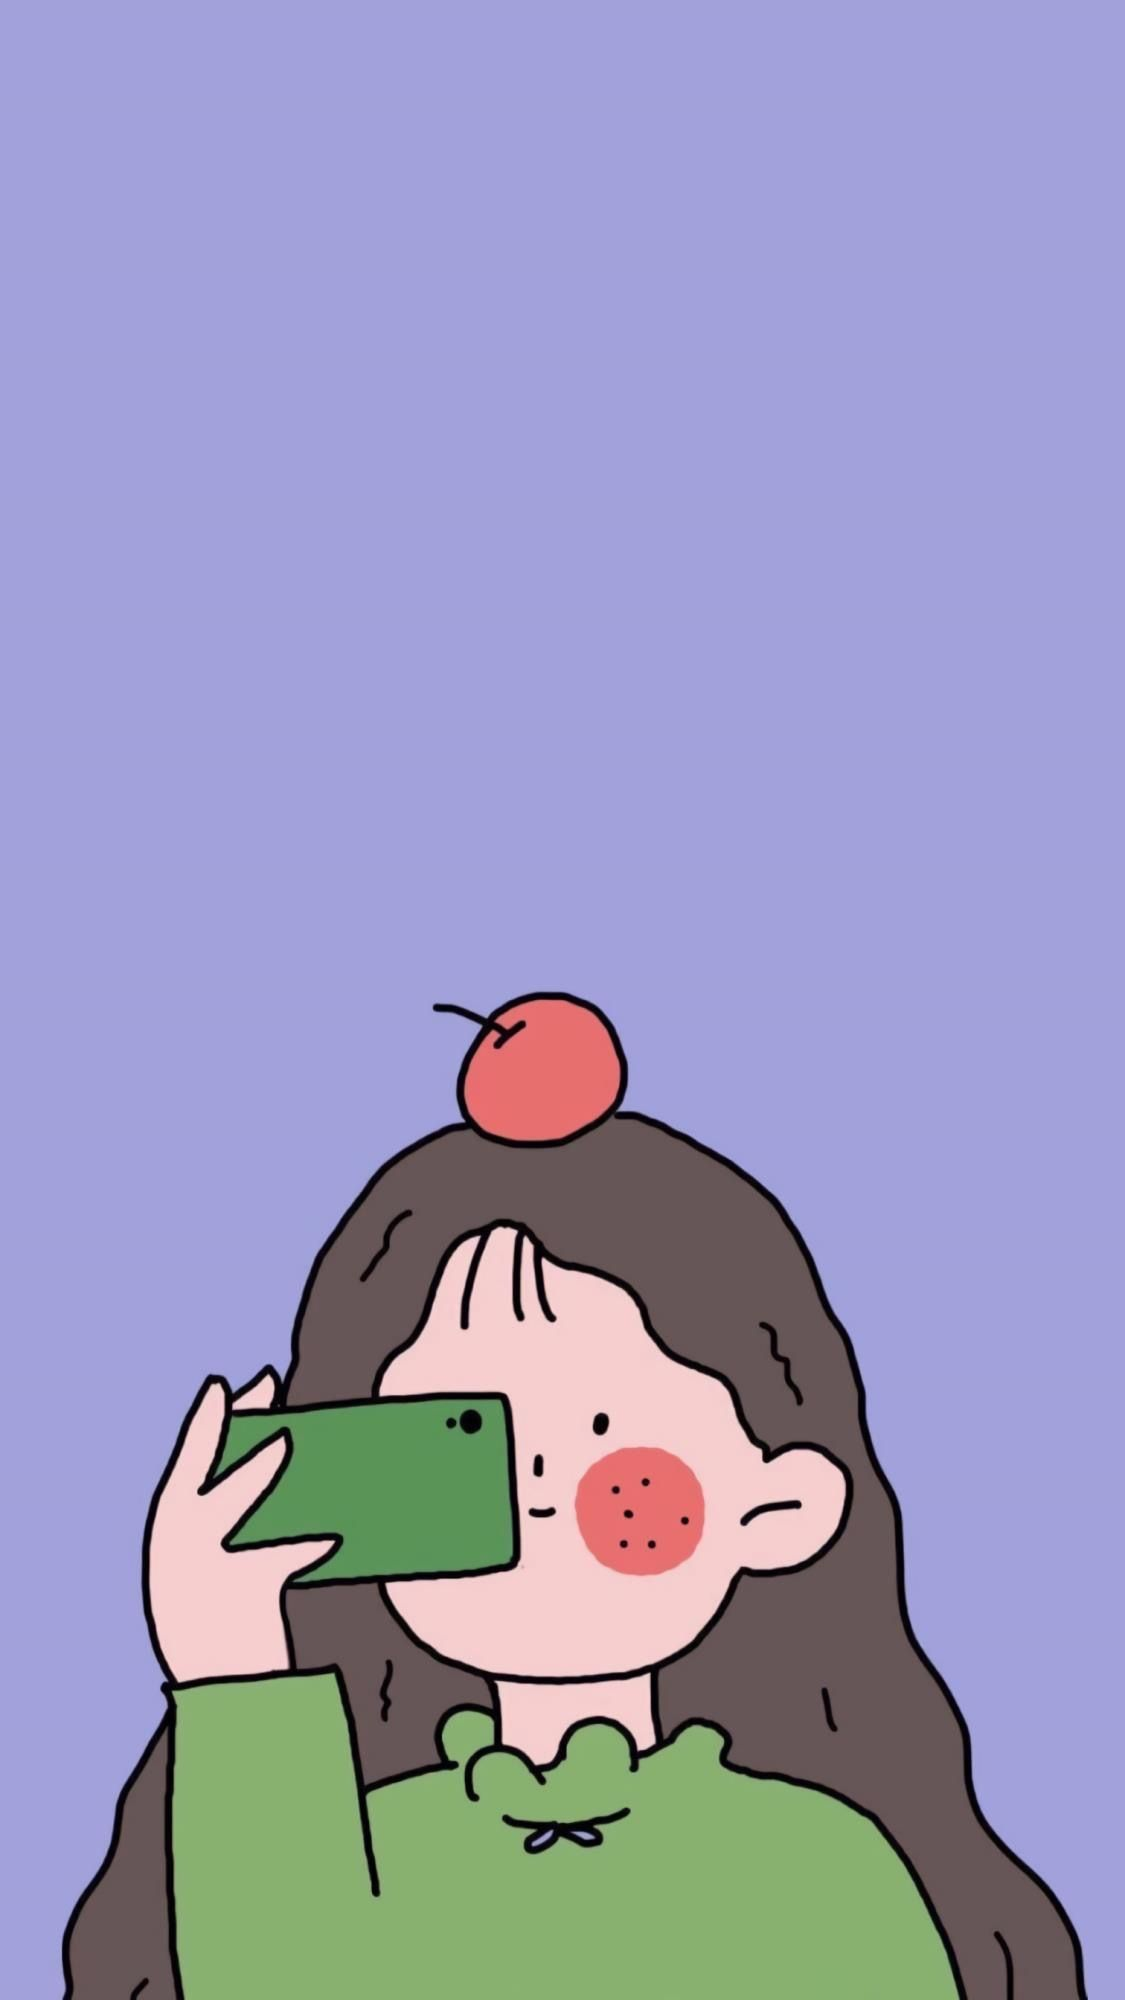 Share Popular Phone Wallpaper And Backgrounds Hope You Will Like It Share To People Who Need Cute Couple Wallpaper Cute Cartoon Wallpapers Cartoon Wallpaper